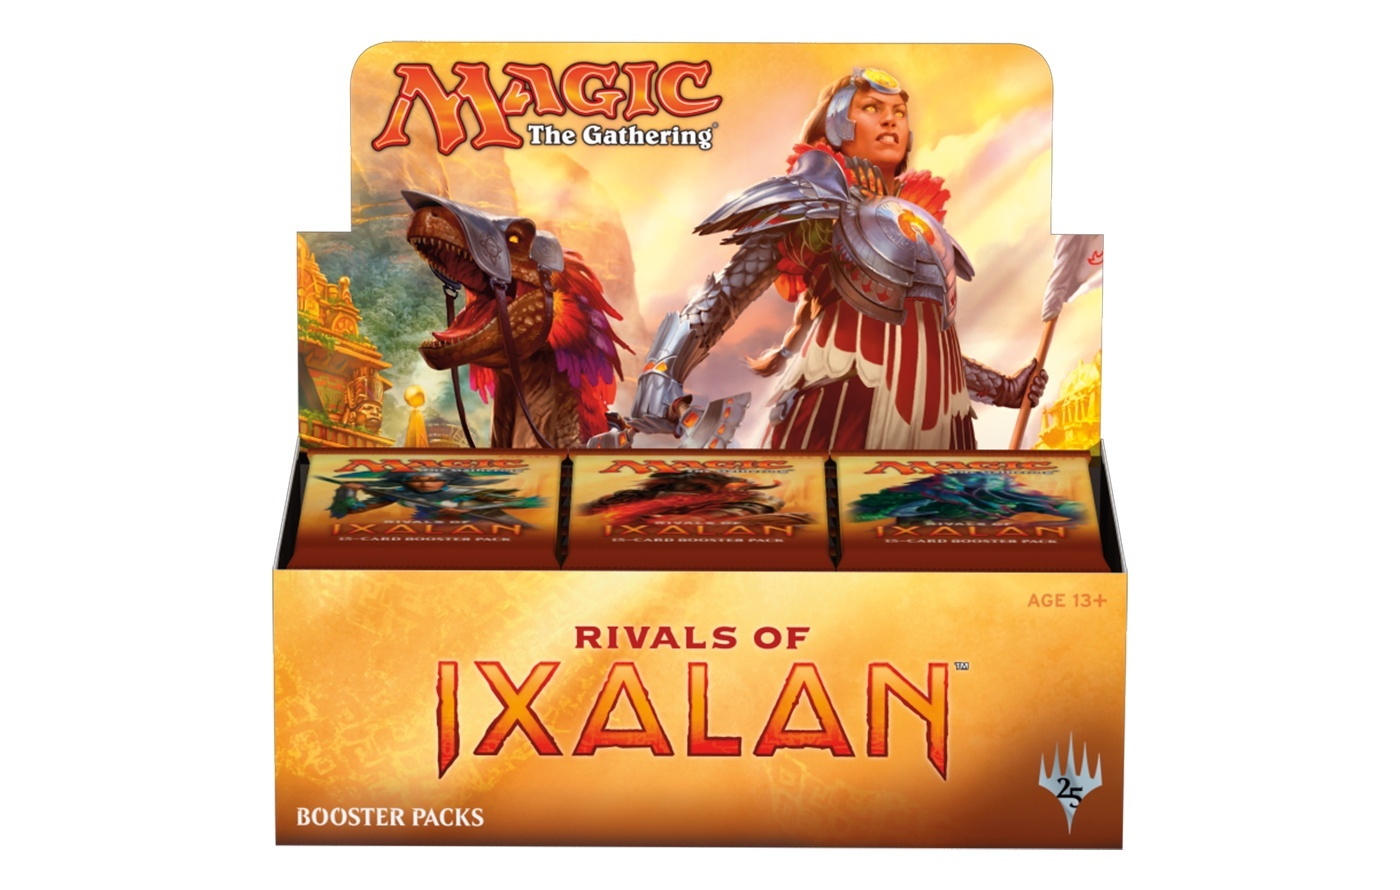 Magic The Gathering: Rivals of Ixalan Booster Box image